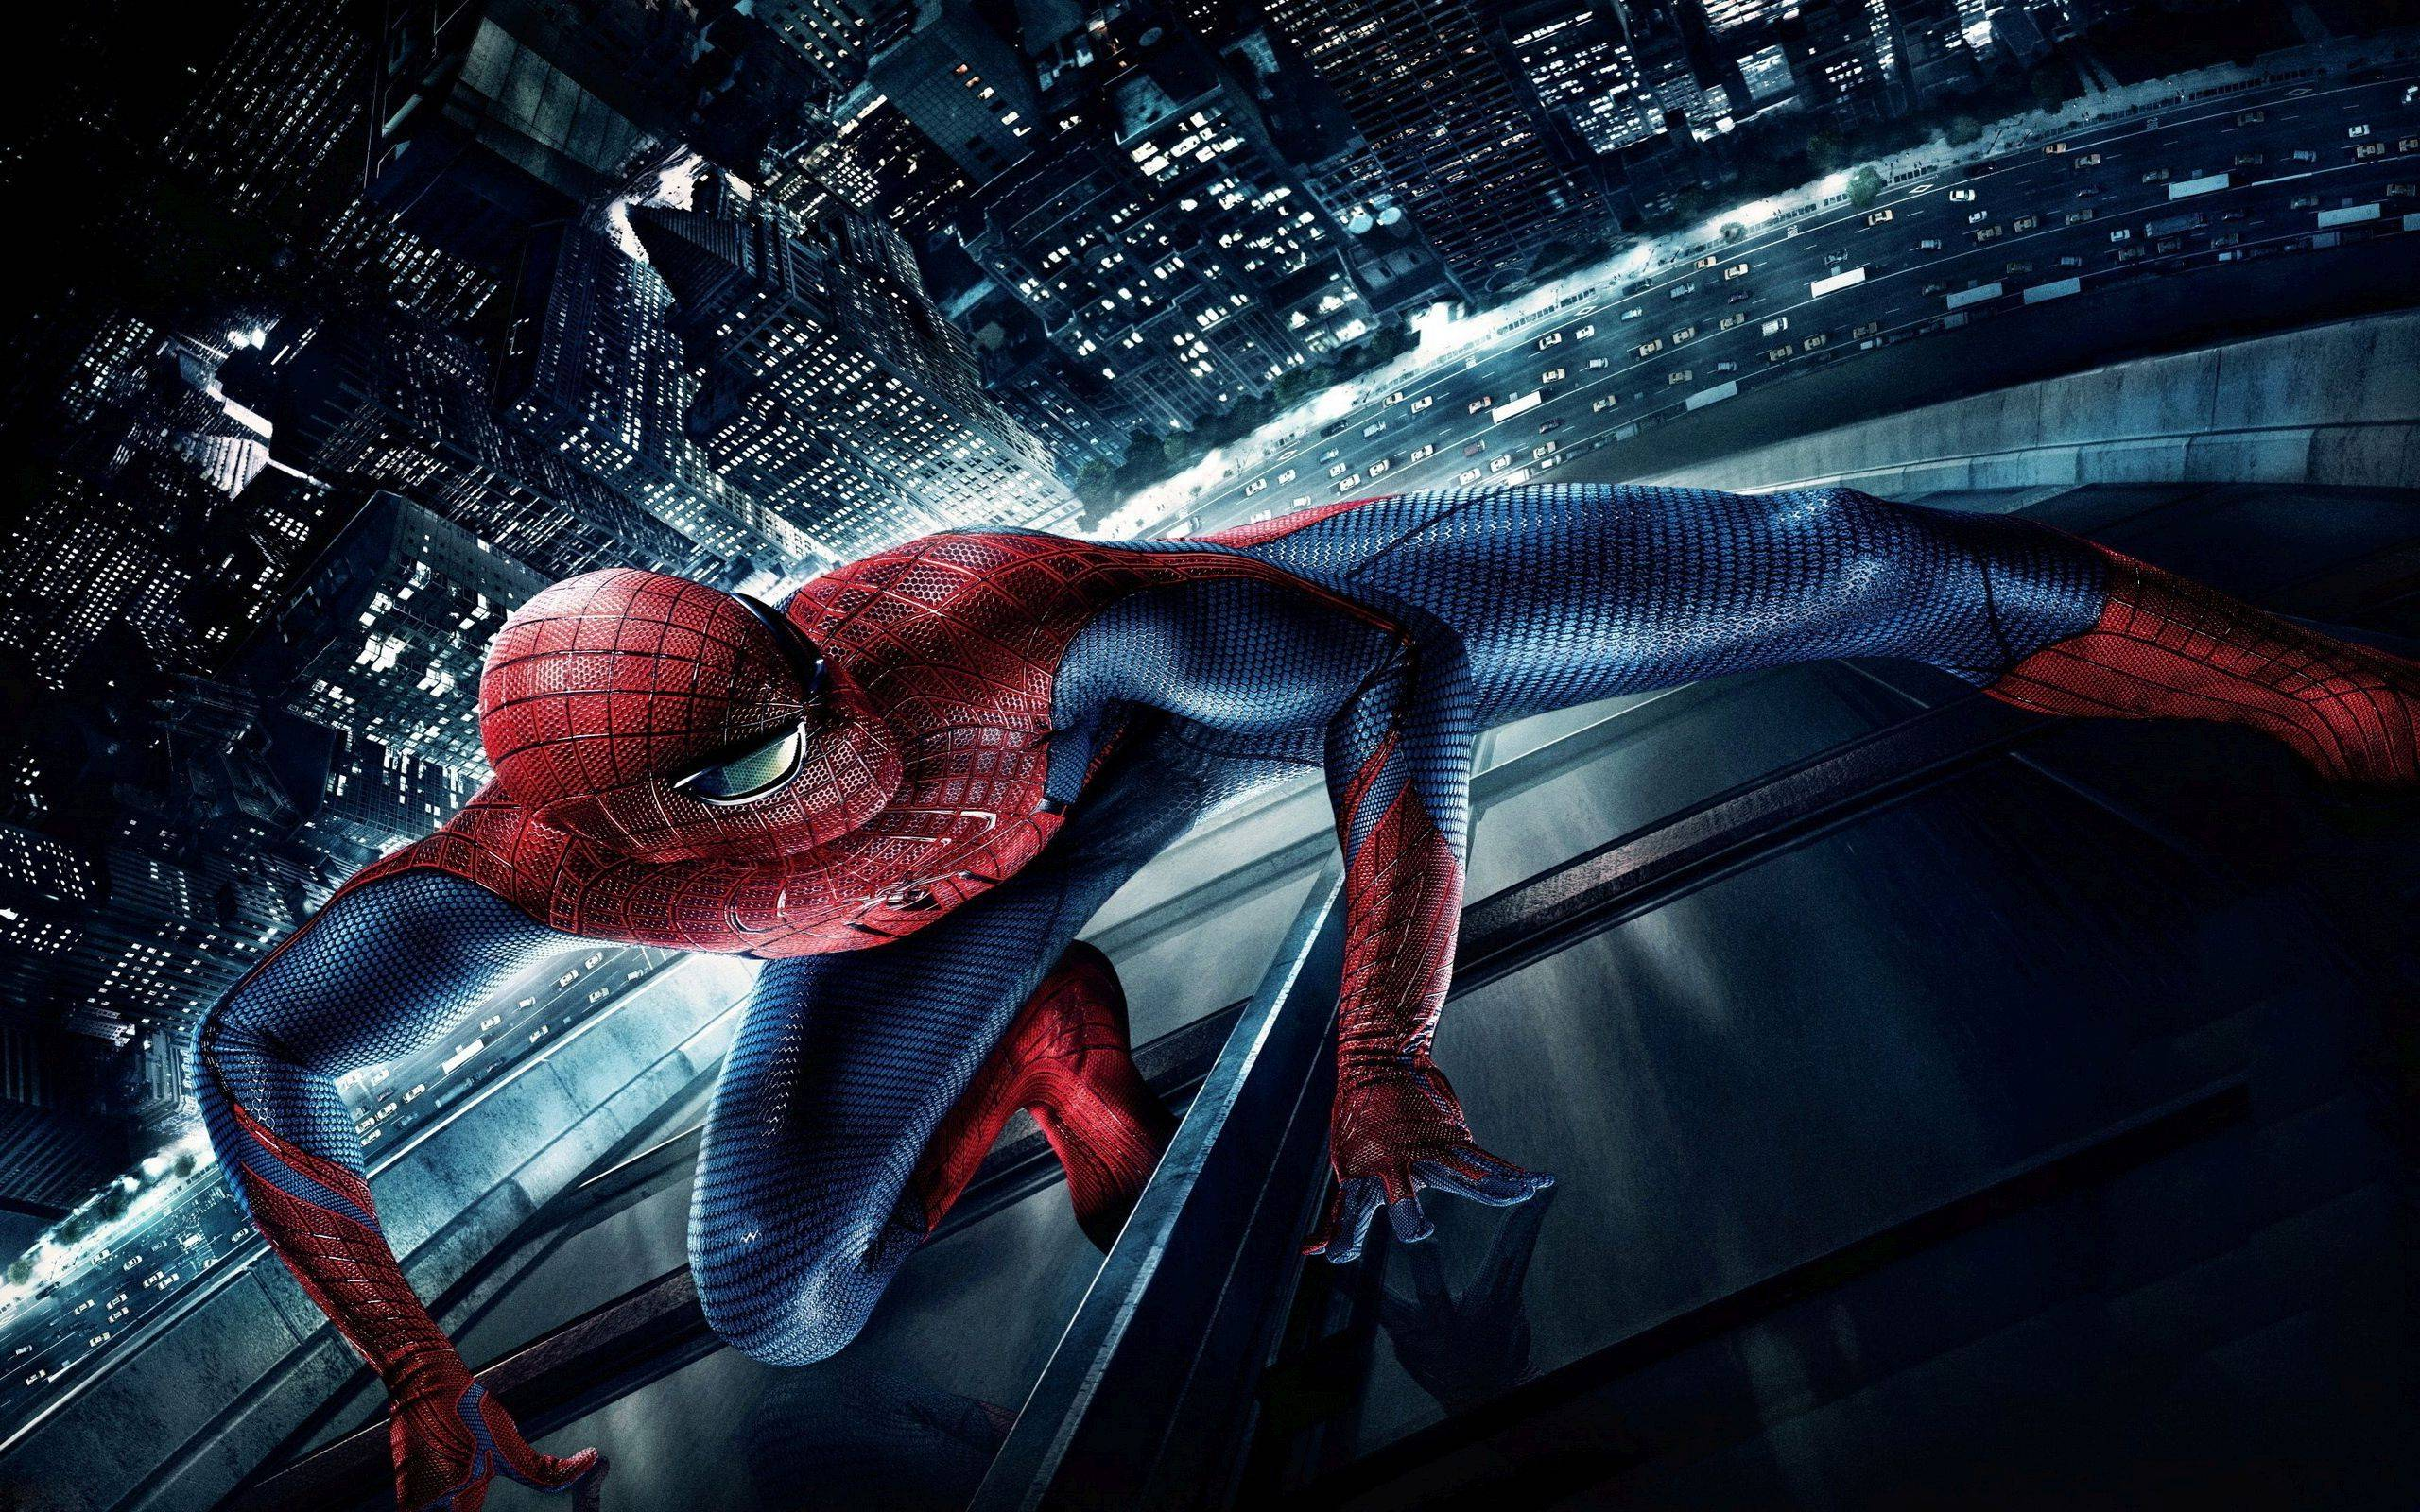 Hd wallpaper vivo - Amazing Spider Man Hd Wallpapers Download 9397 Full Hd Wallpaper